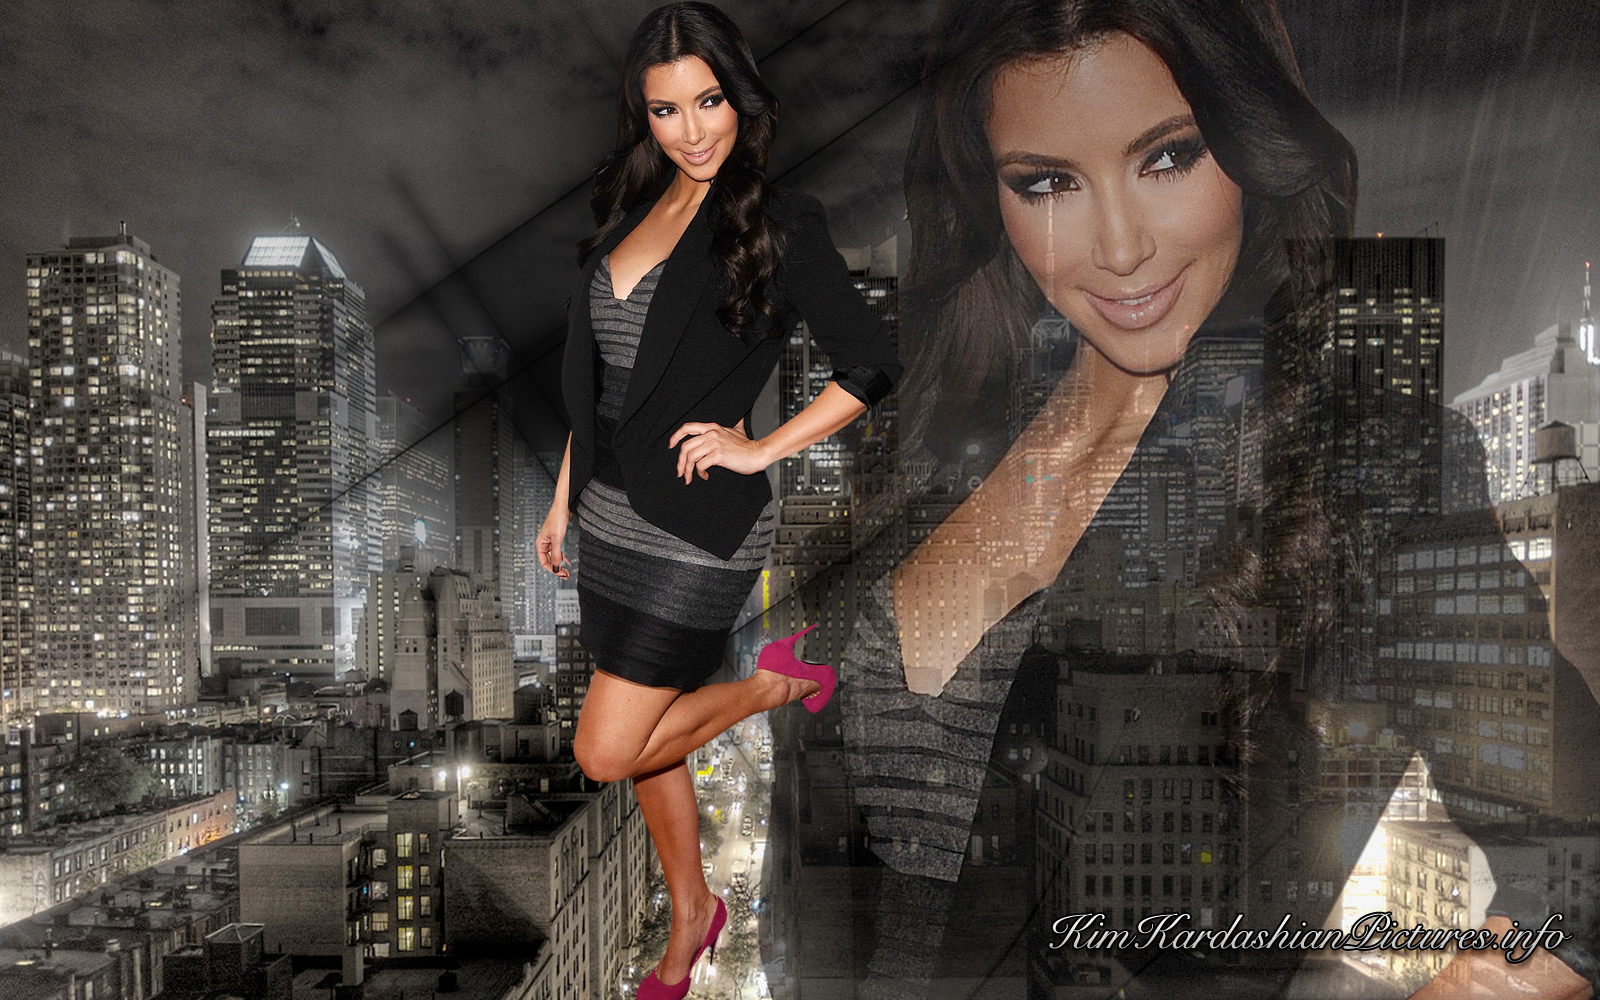 Kim Kardashian Wallpapers Pictures And Backgrounds PC Android iPhone 1600x1000